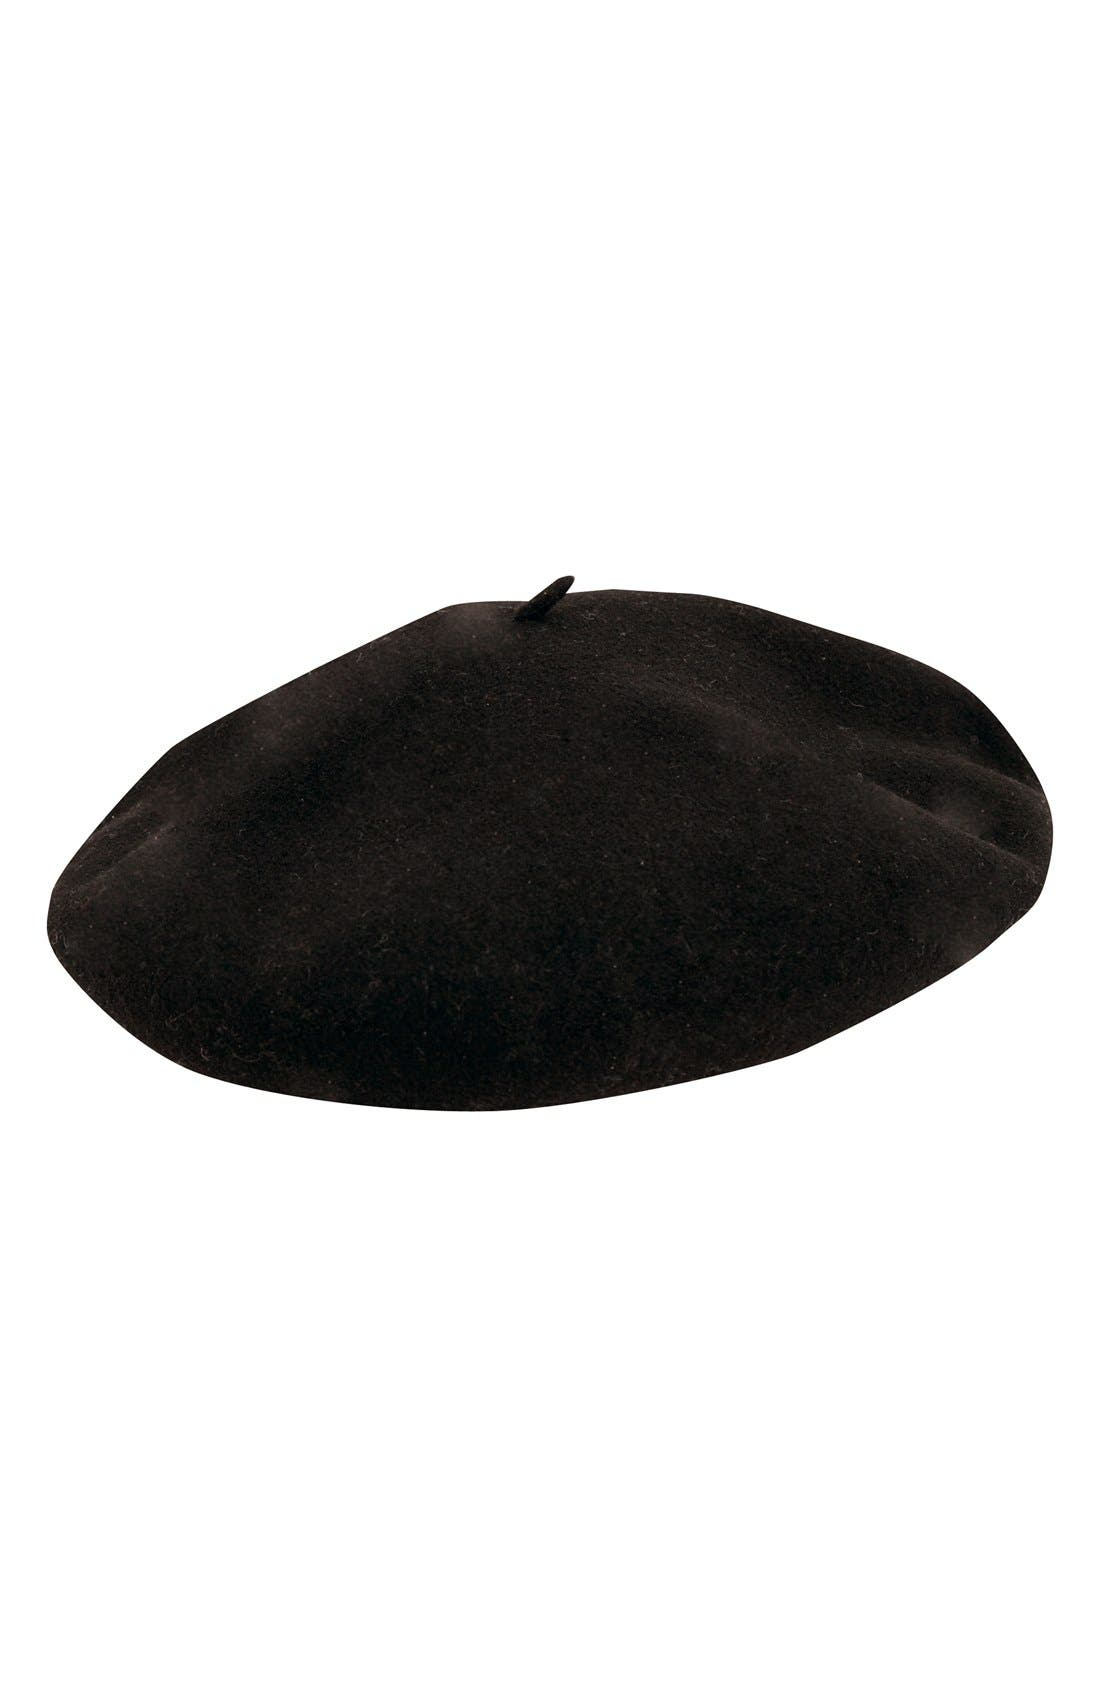 DORFMAN PACIFIC 'Basque' Beret